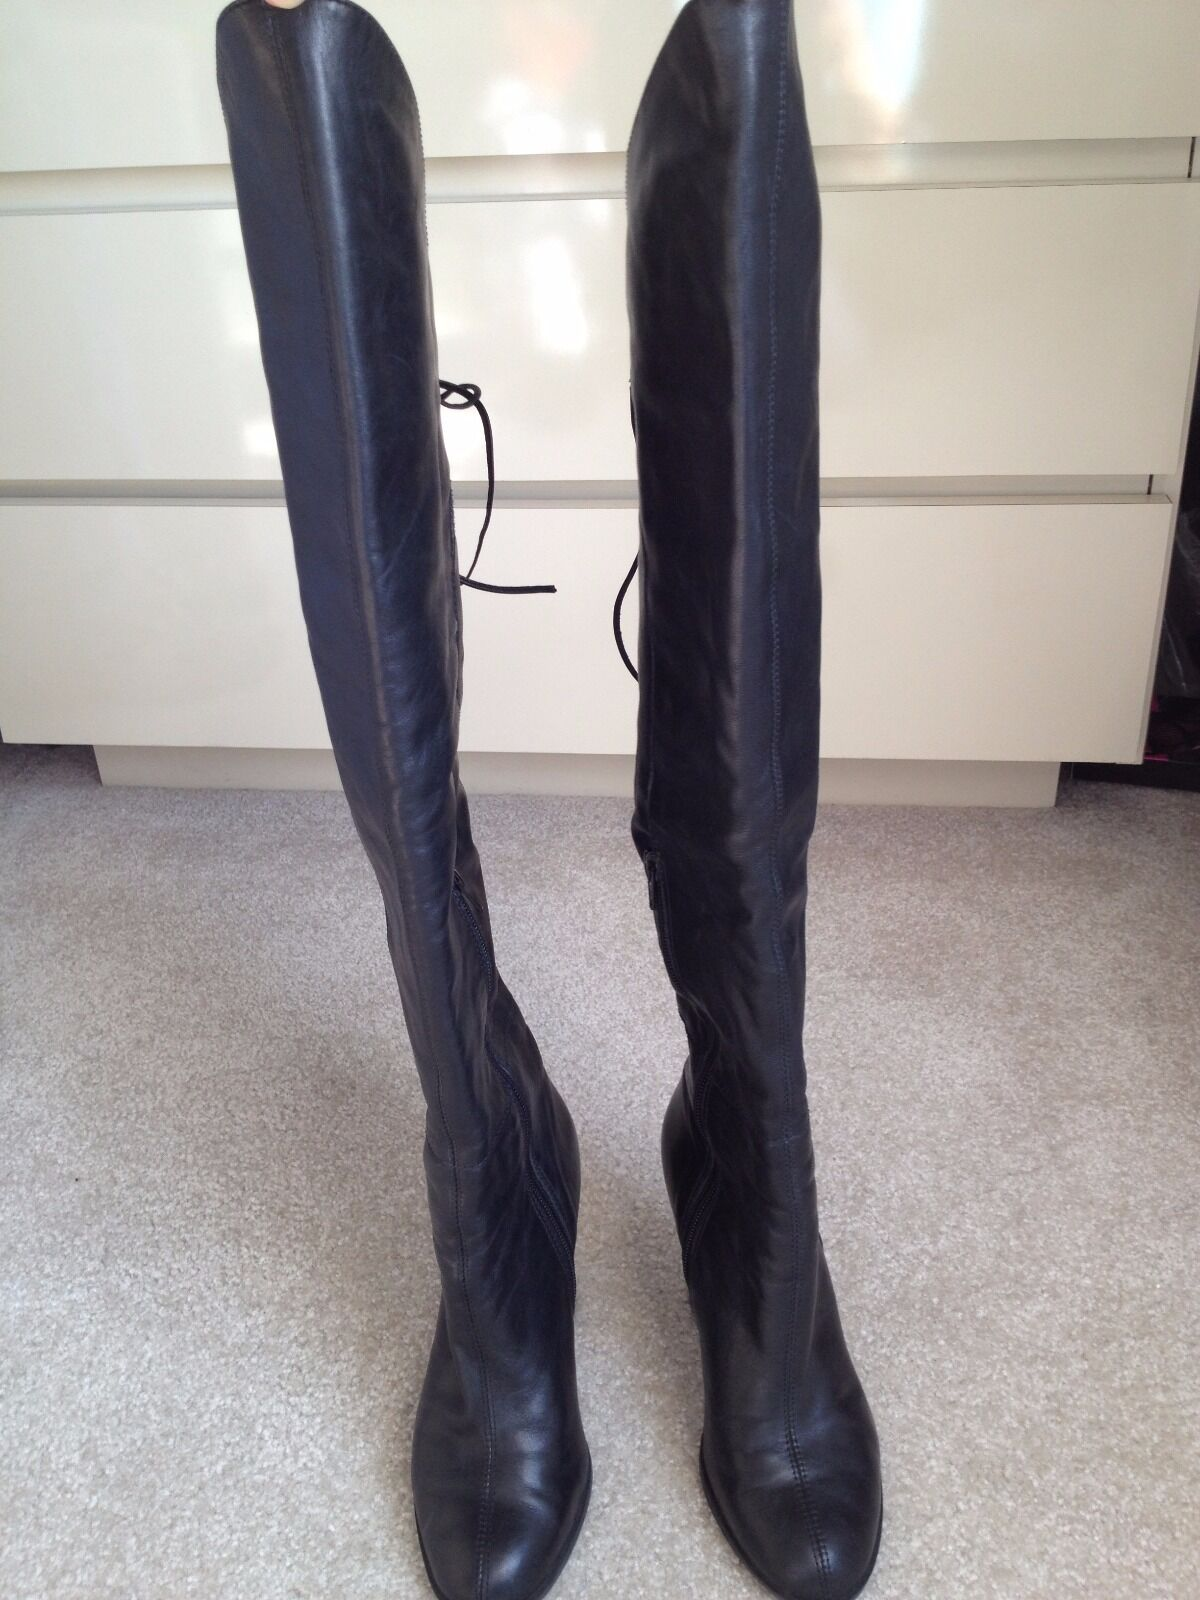 Leather BRONX (Made in Brazil) Lace Up Over the Knee (Excellent Condition)